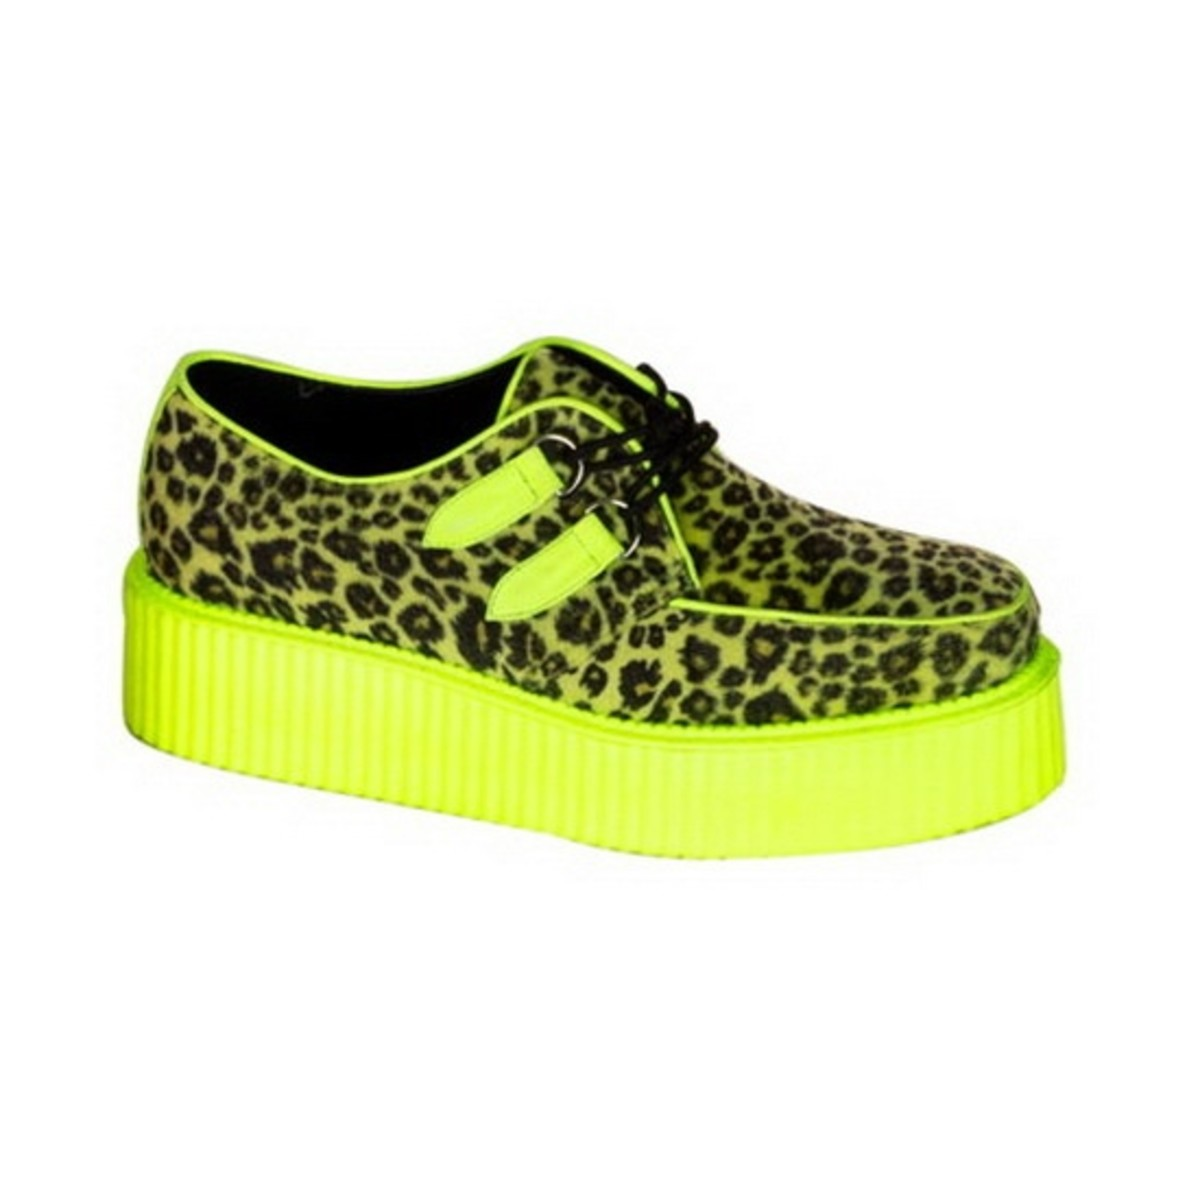 MEOW! Nothing quite like clomping into the dance scene wearing these leopard spotted lovelies!